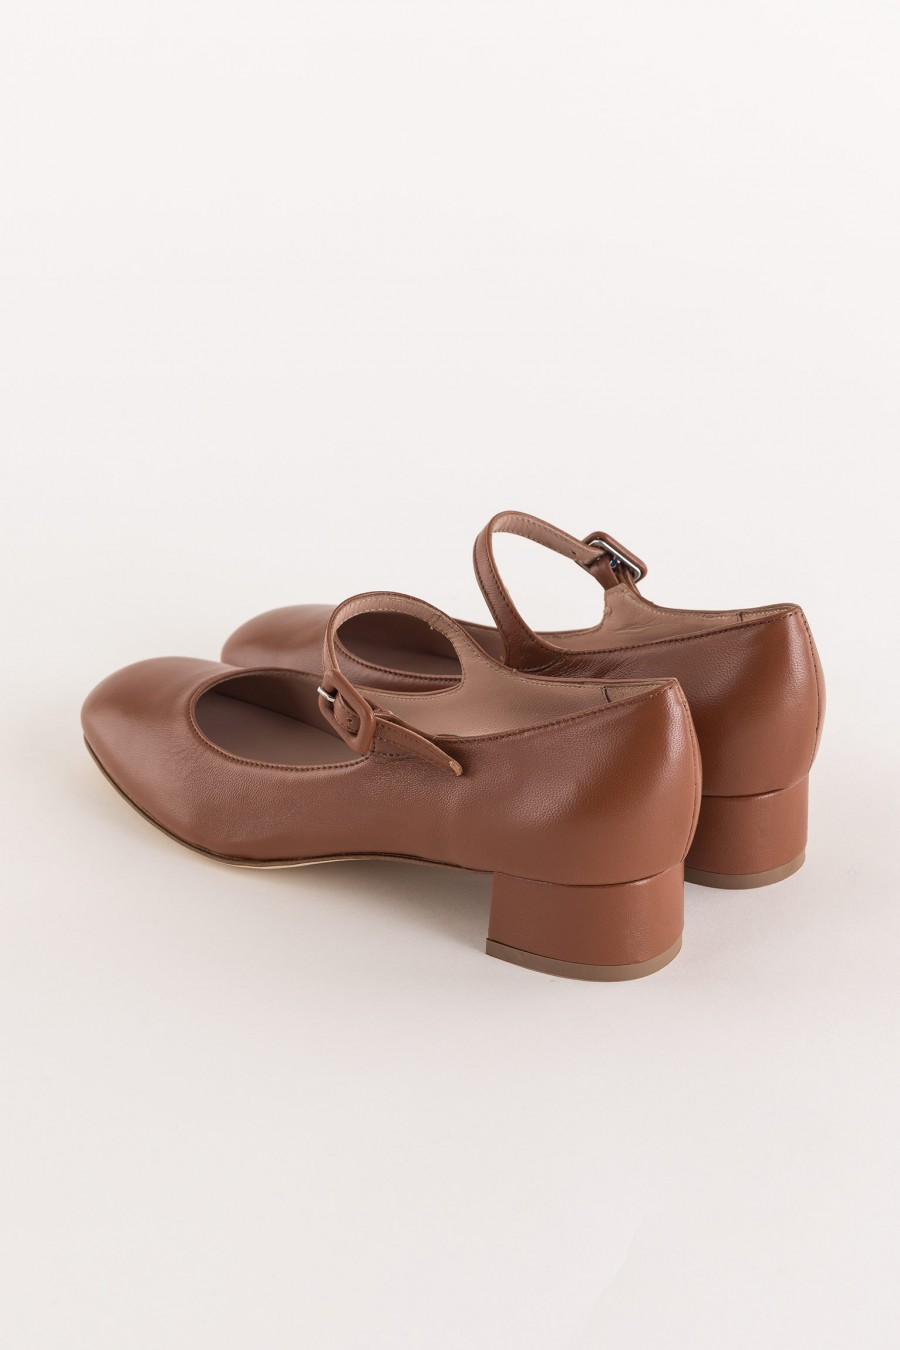 brown mary jane with heel and strap